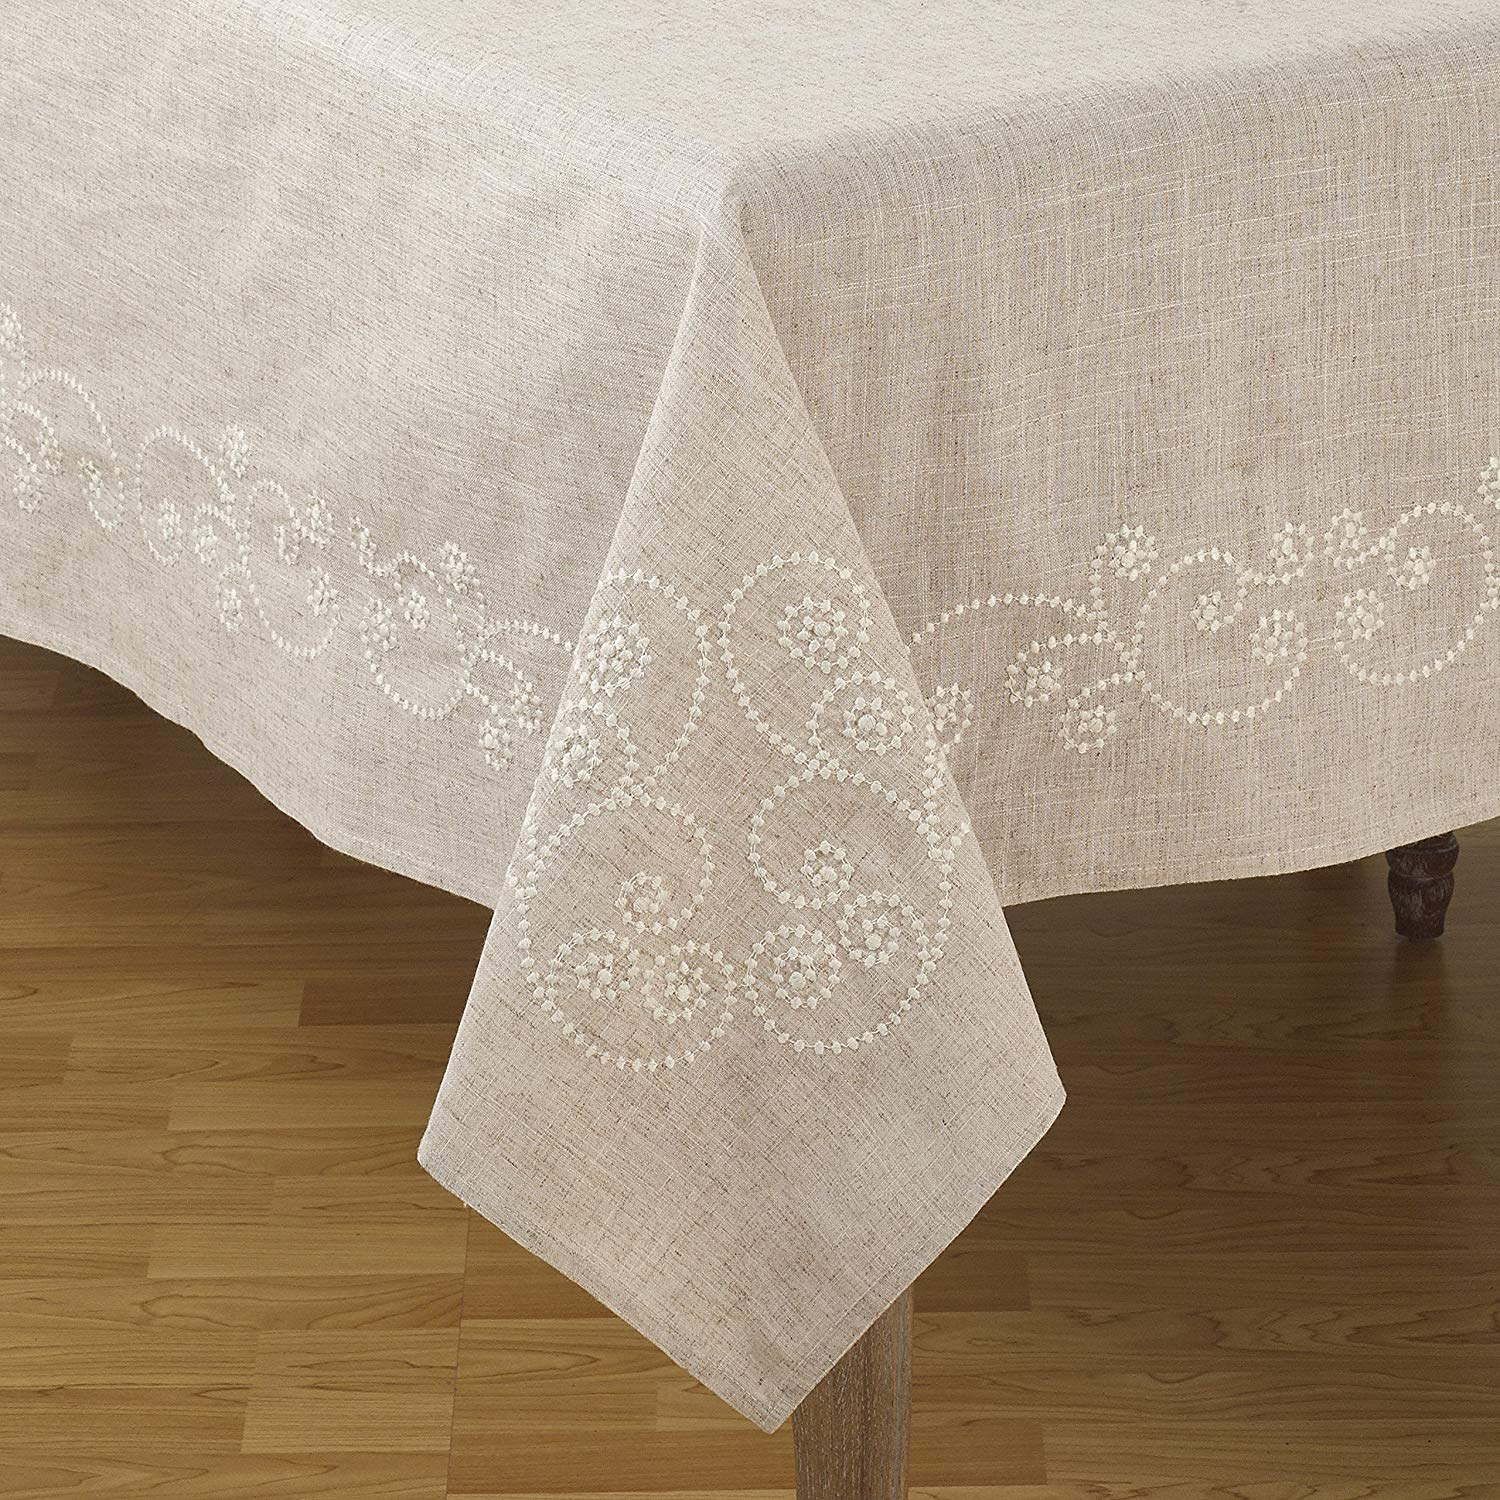 saro lifestyle embroidered swirl design linen blend accent your focus table runner free pattern natural home kitchen cotton placemats nightstands toronto screw furniture legs